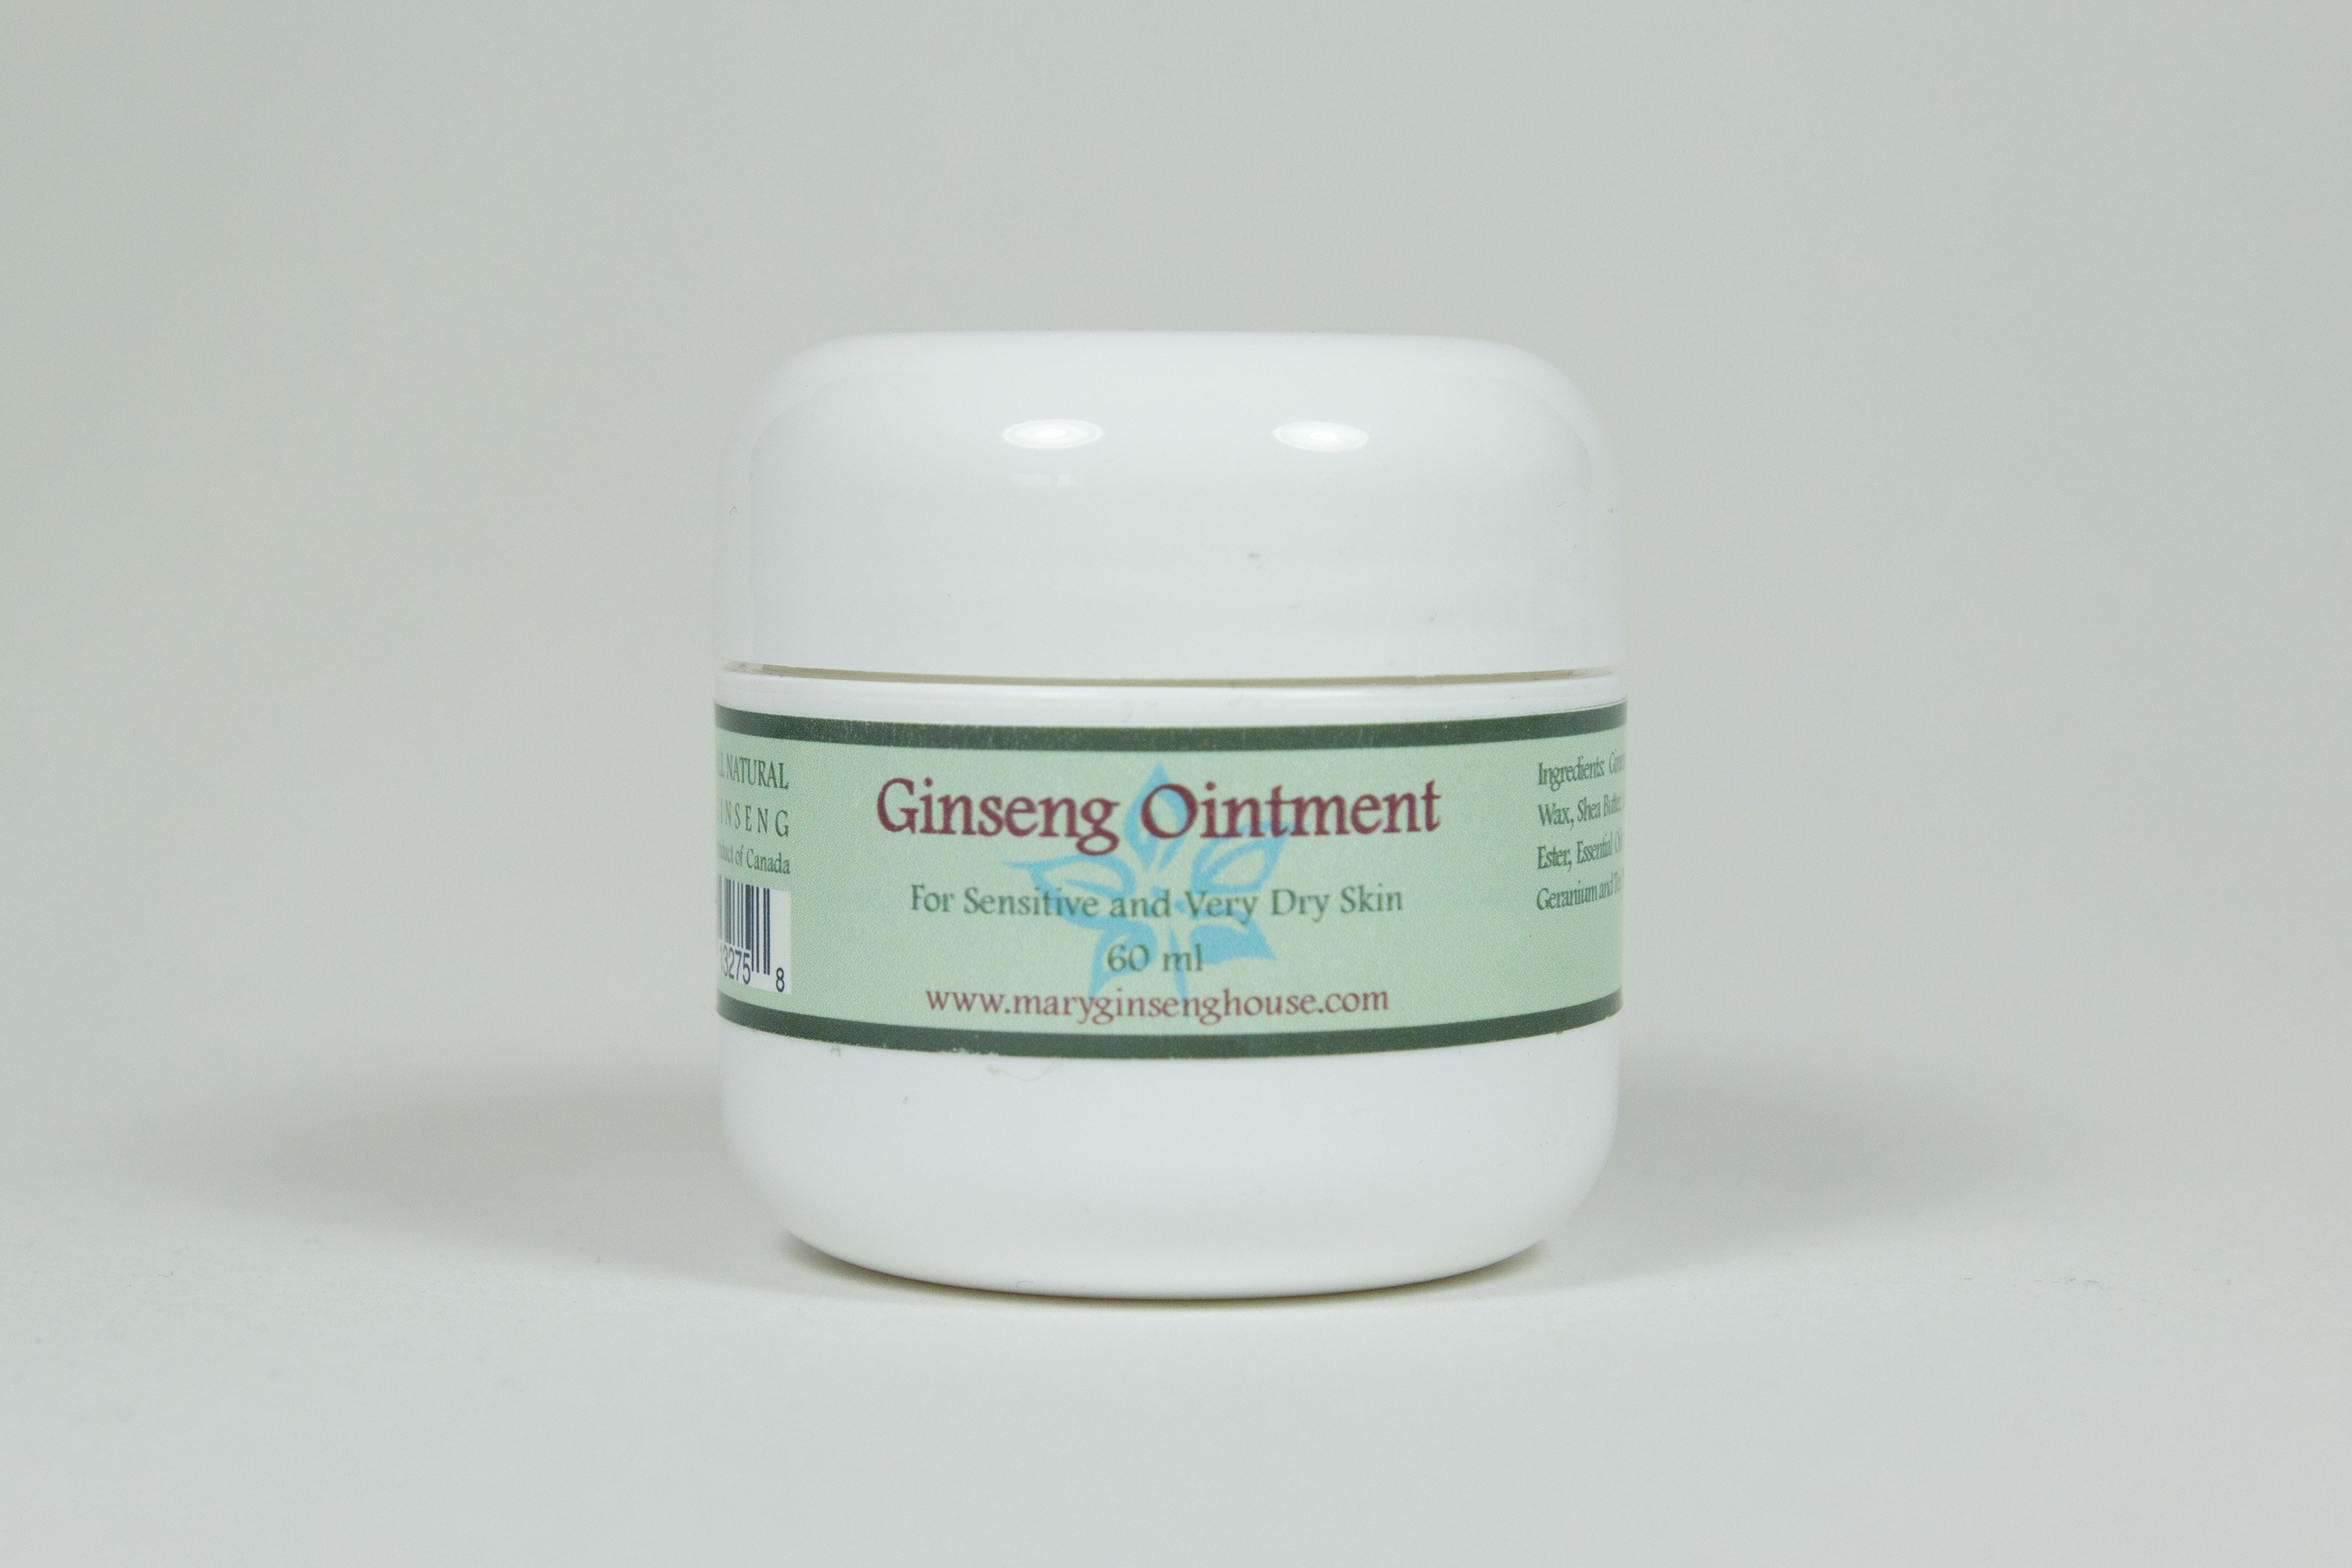 Ginseng Ointment (60 ml)